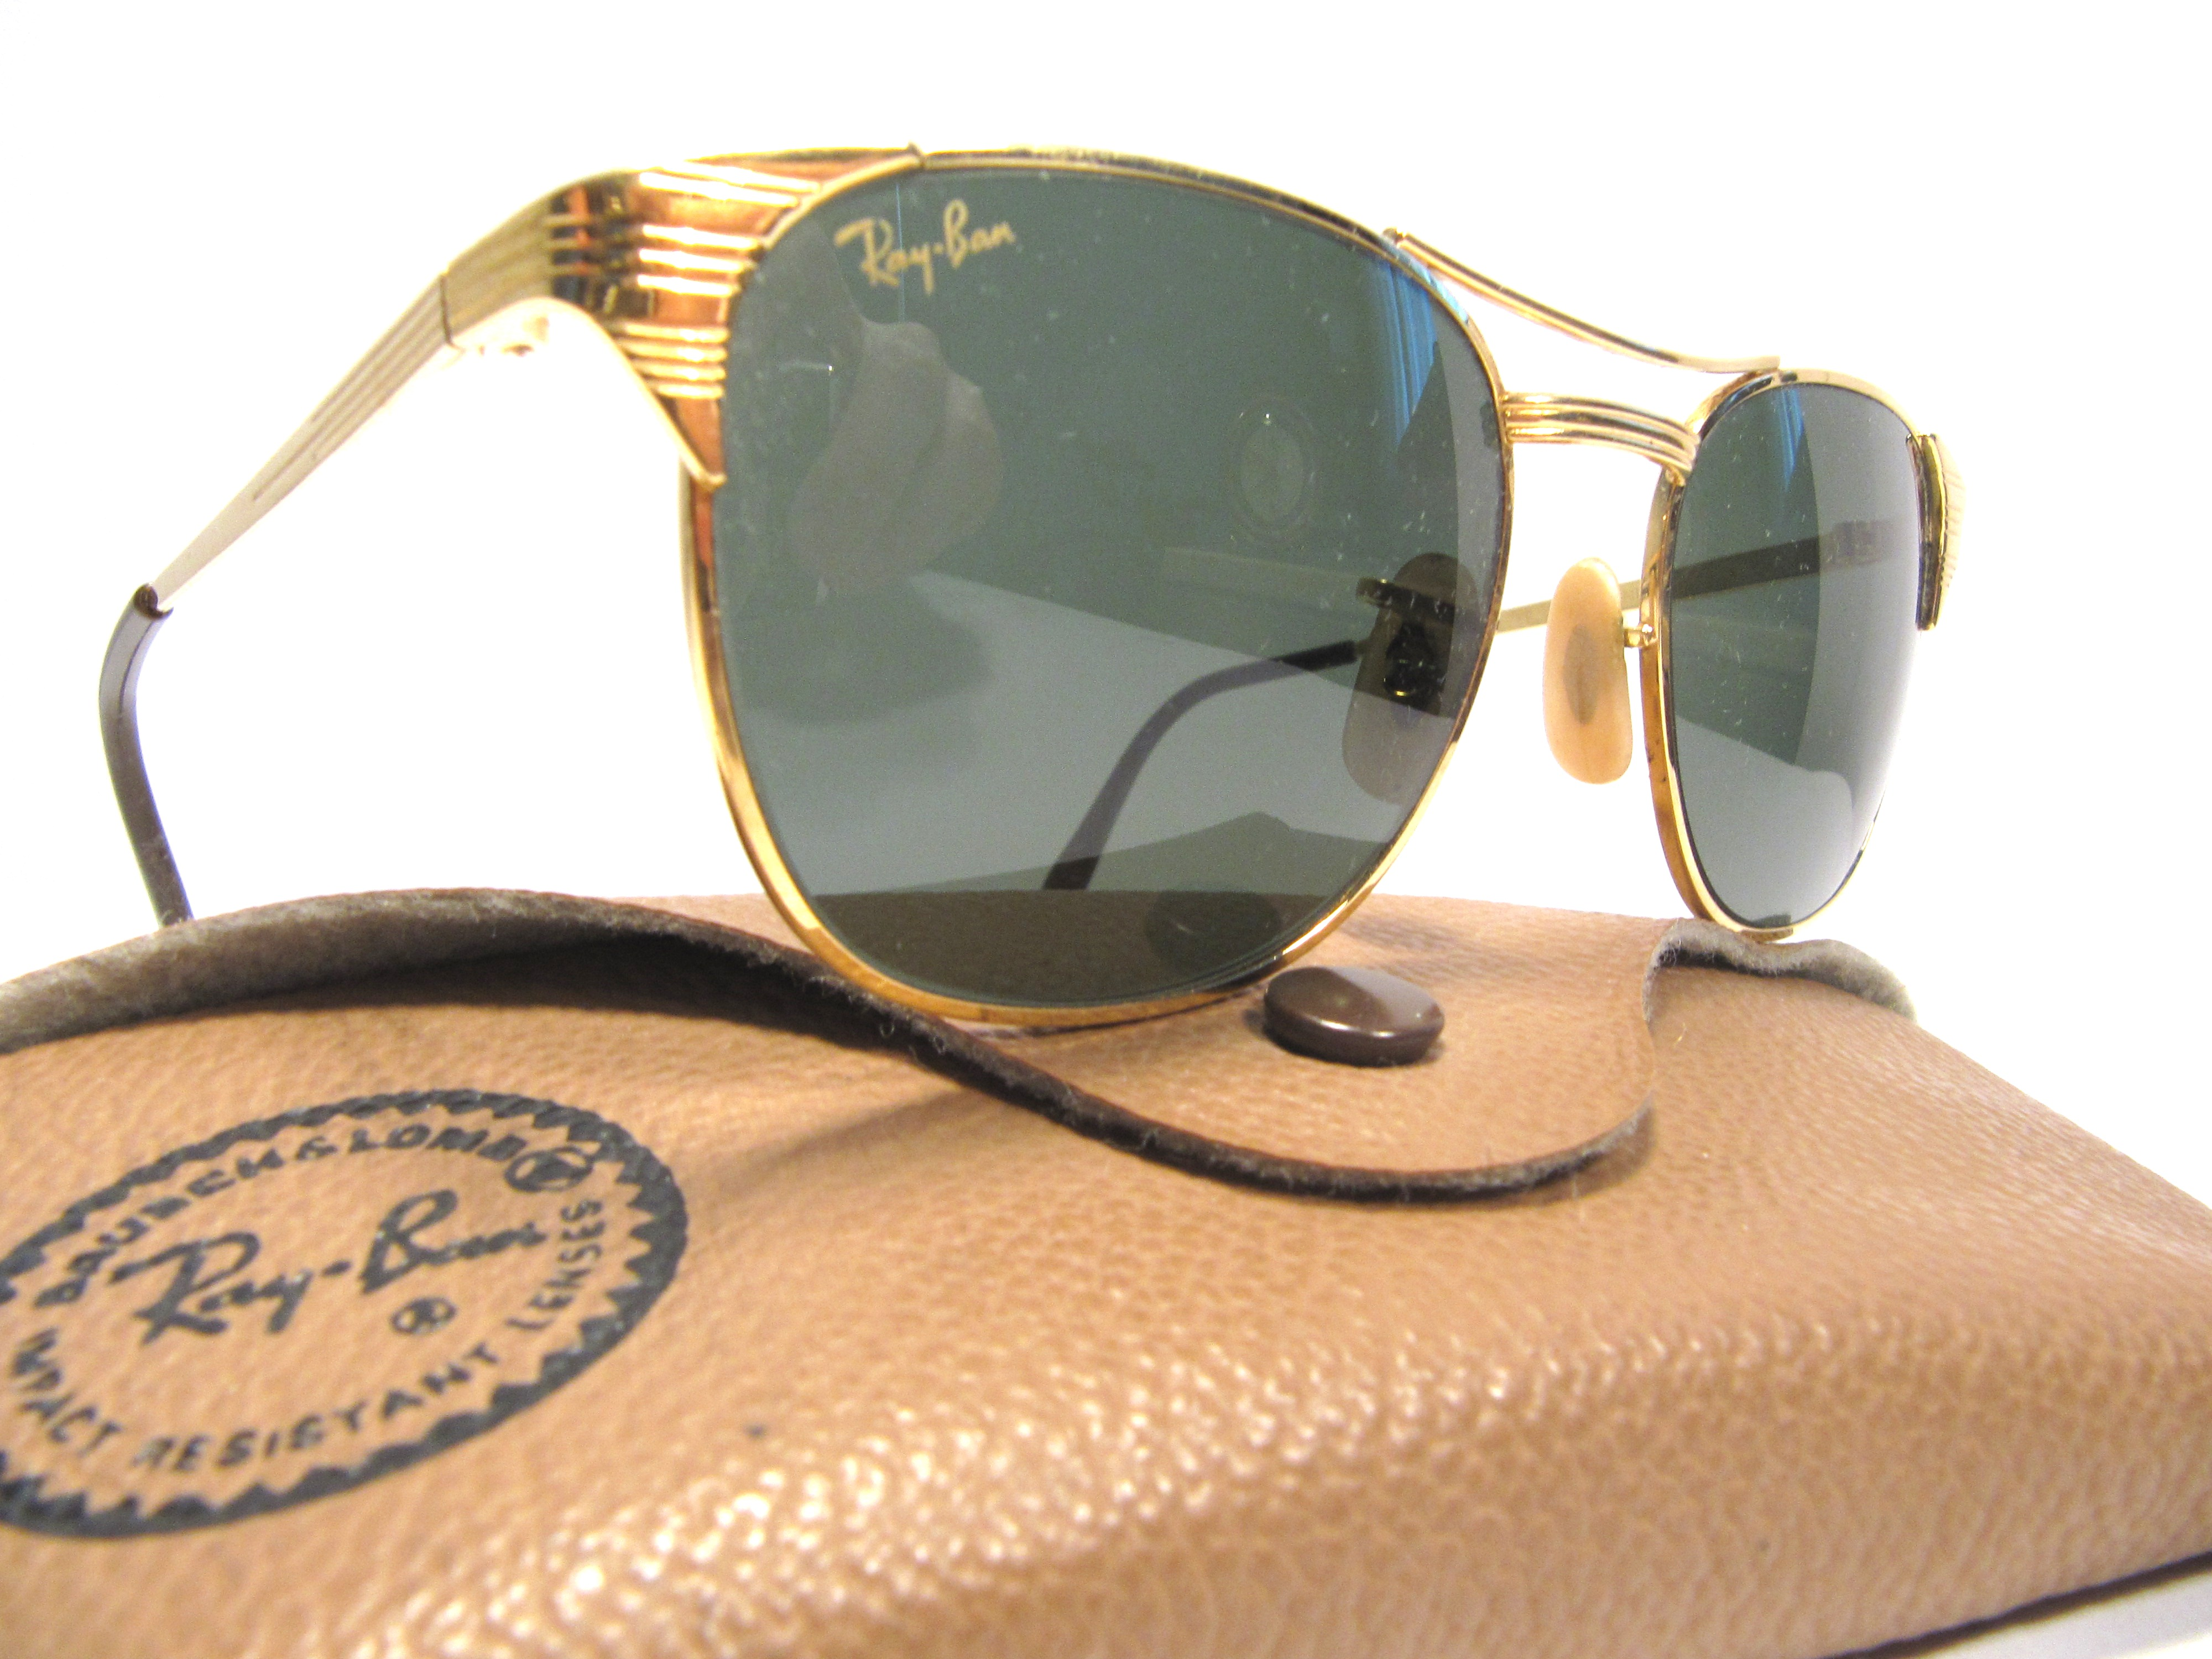 ray ban sunglasses made in usa  ray ban signet bausch & lomb, 1980s vintage sunglasses made in u.s.a, golden frame with green lenses